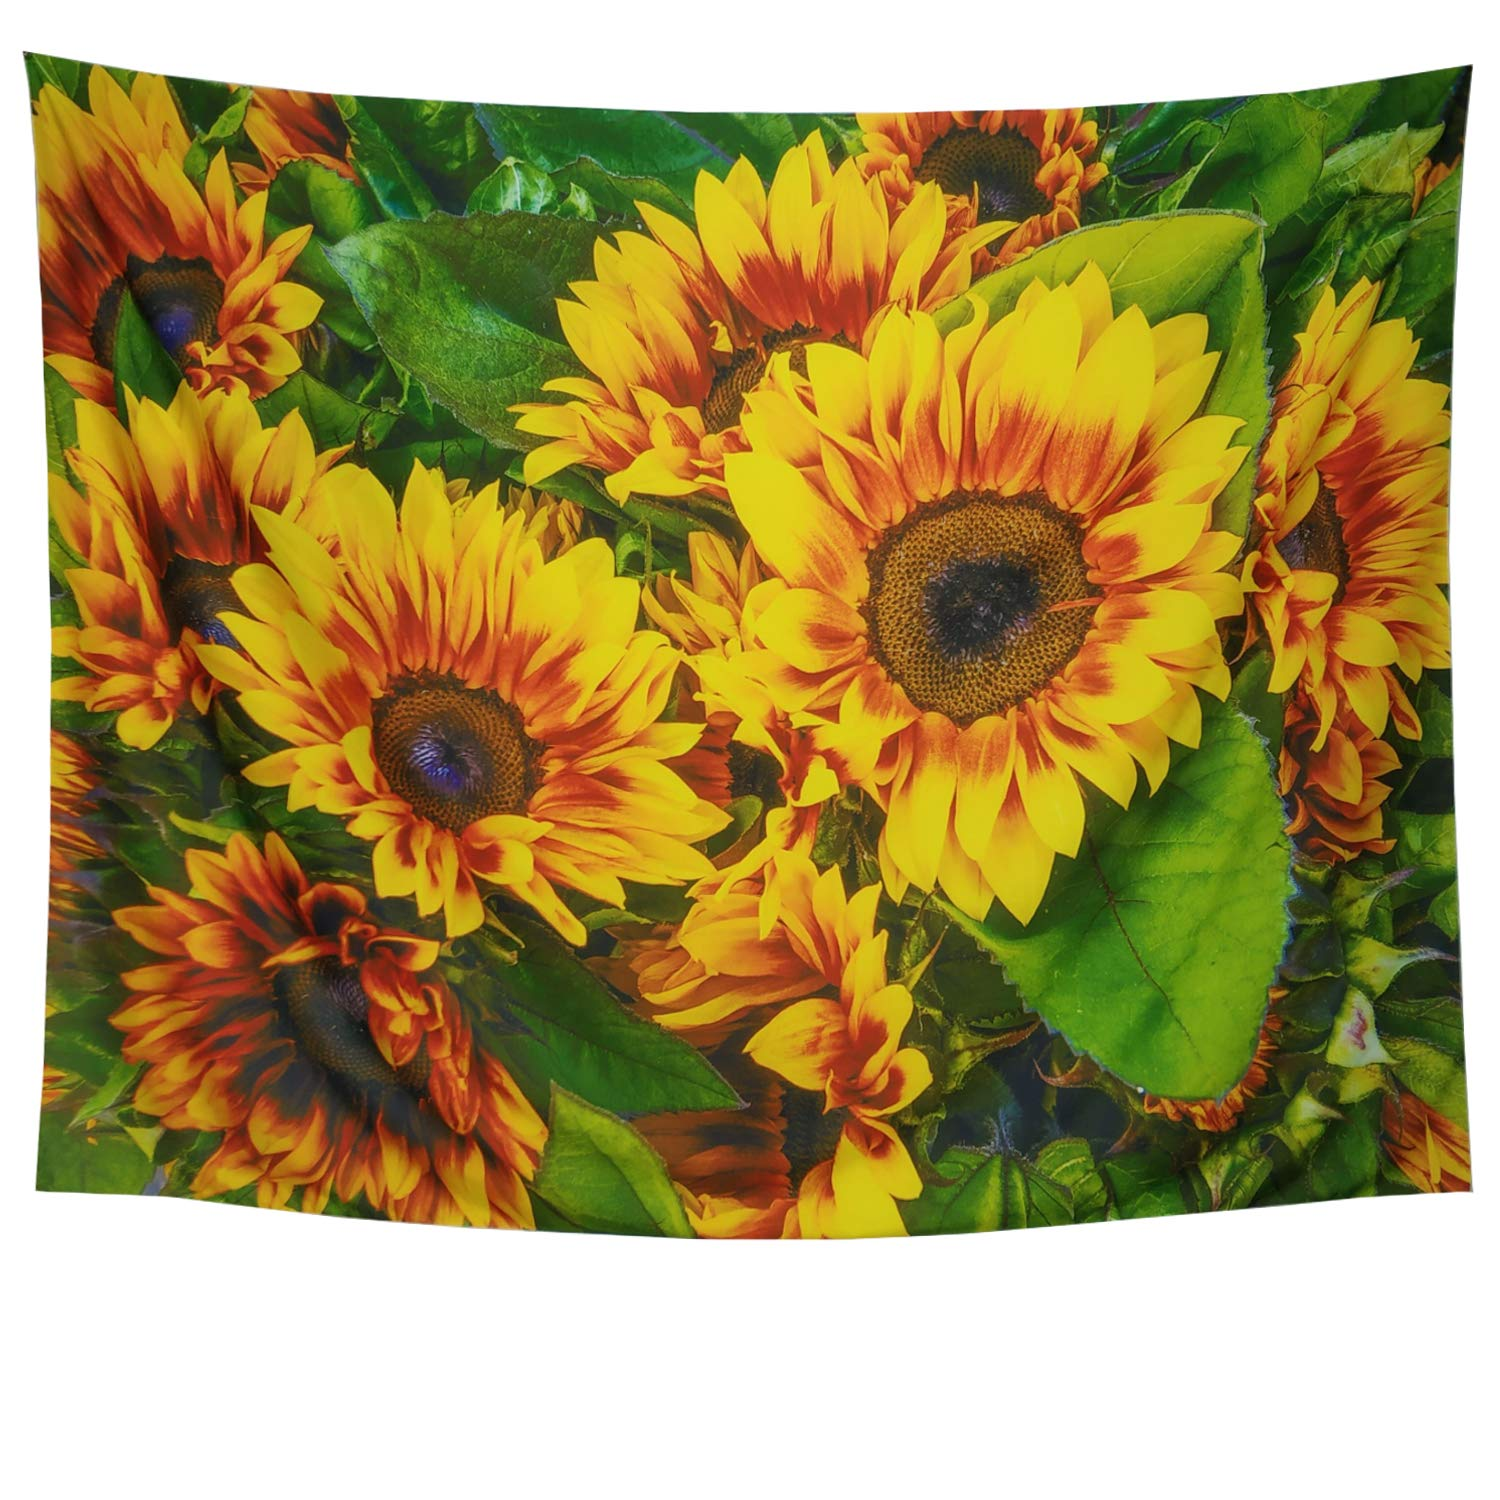 Sunflower Tapestry Green Leaves Wall Tapestry Sunflower Leaf Wall Hanging Boho Landscape Tapestry Plant Printed Tapestry Flower Floral Tapestry for College Student Dorm Decor